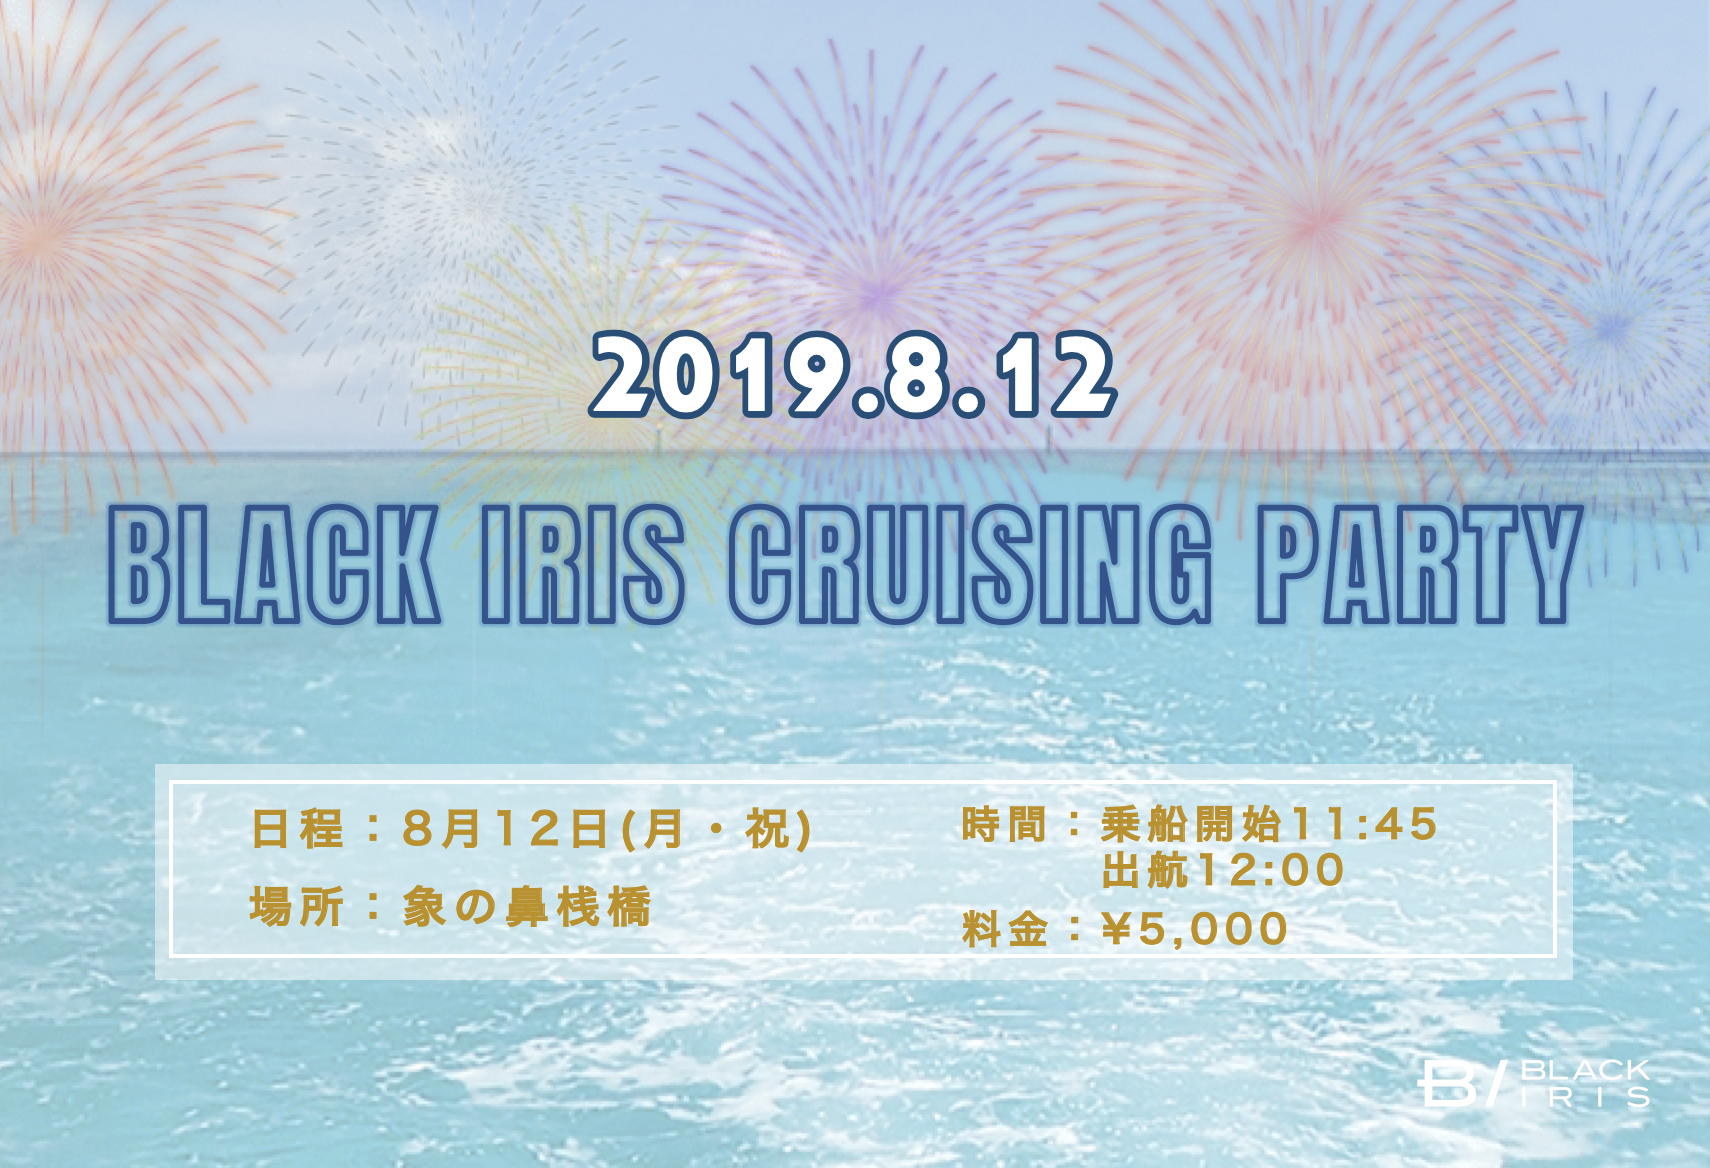 BLACK IRIS CRUISING PARTY